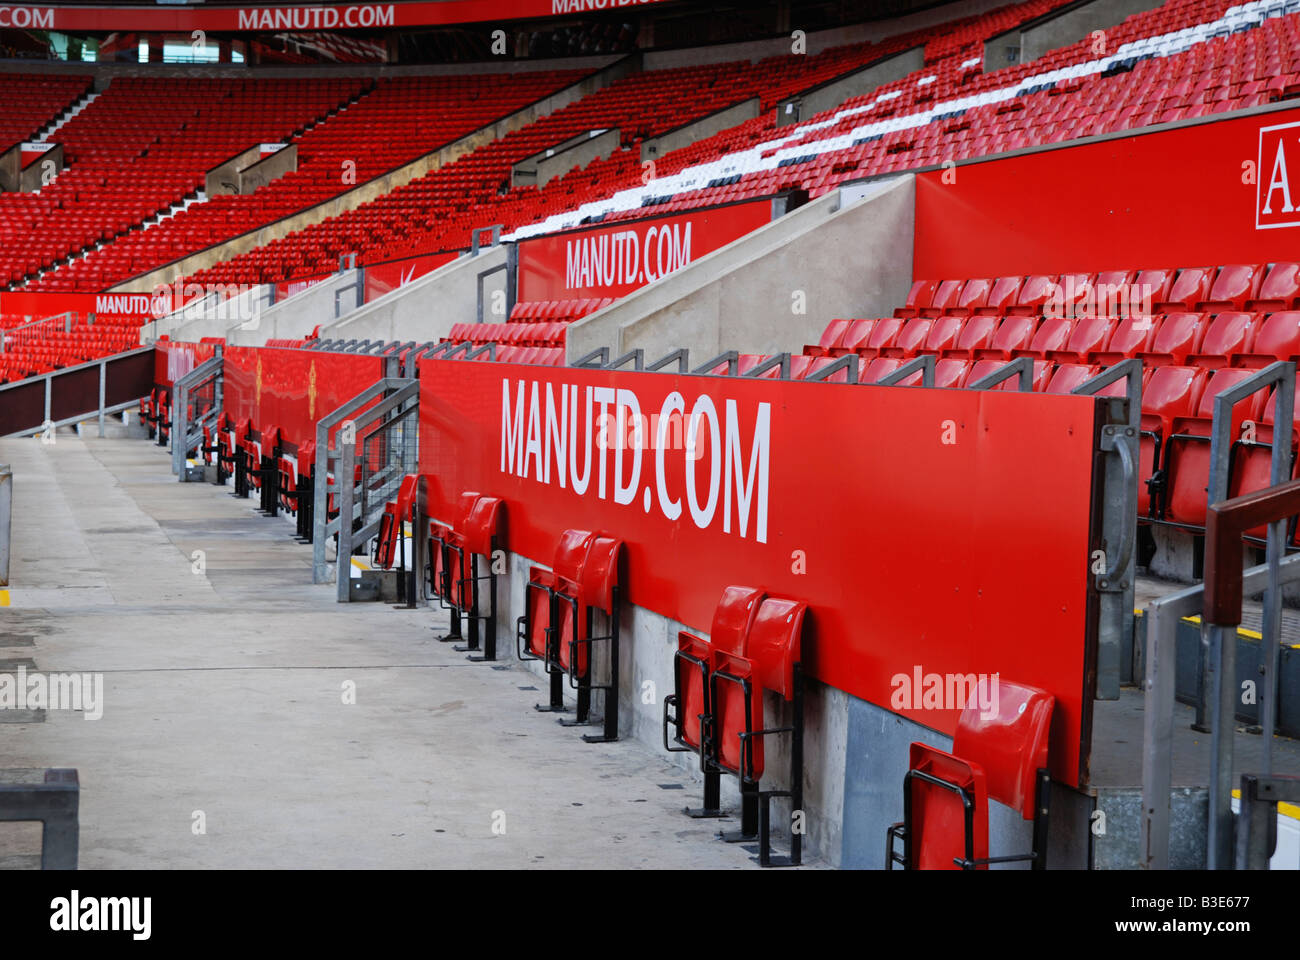 inside old trafford the home of manchester united football club,england,uk - Stock Image